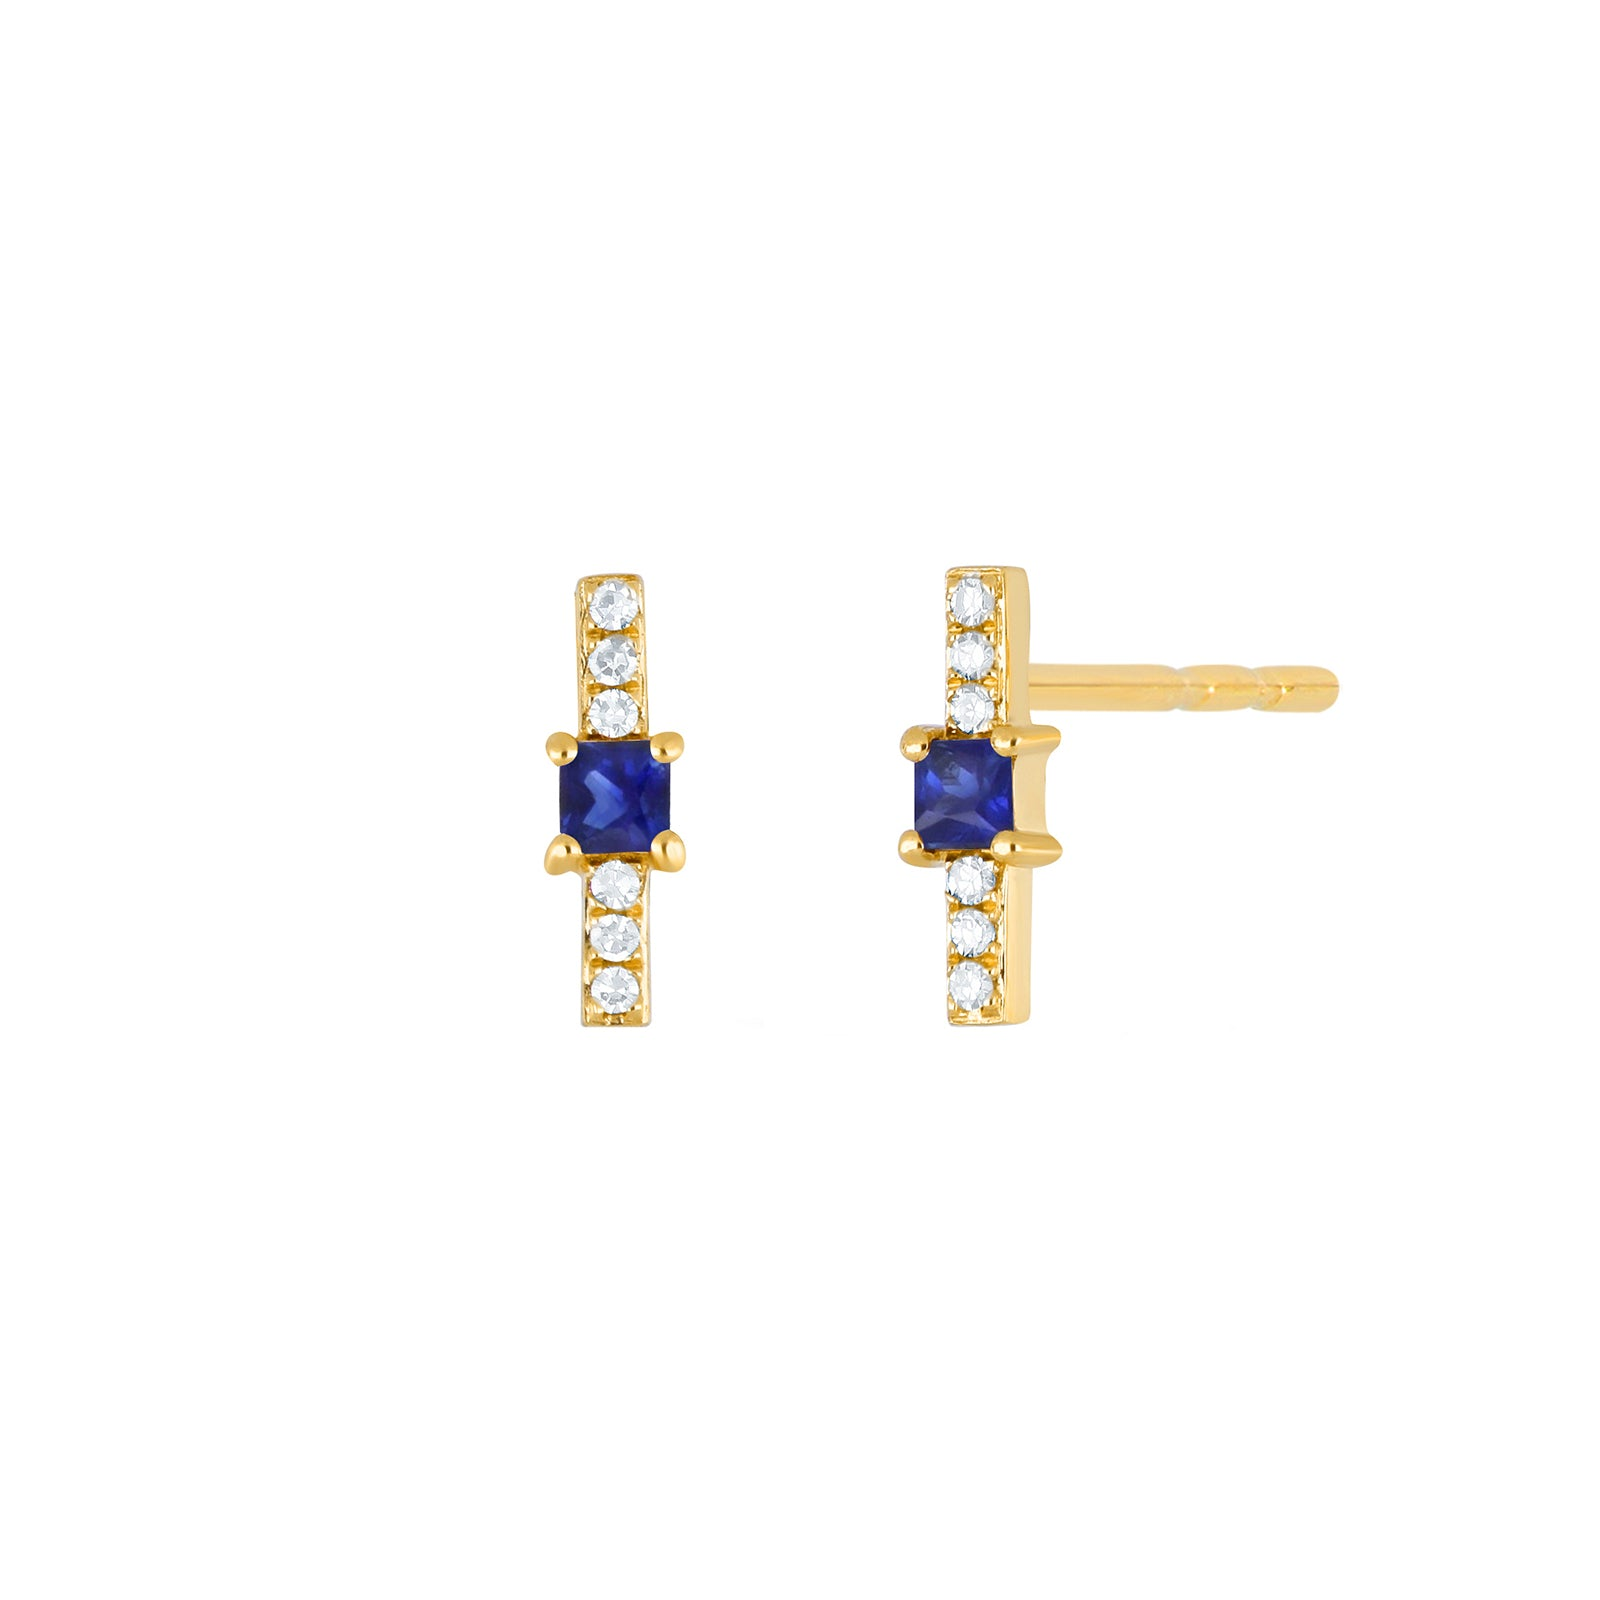 EF Collection Sapphire & Diamond Princess Bar Studs - Yellow Gold - Earrings - Broken English Jewelry